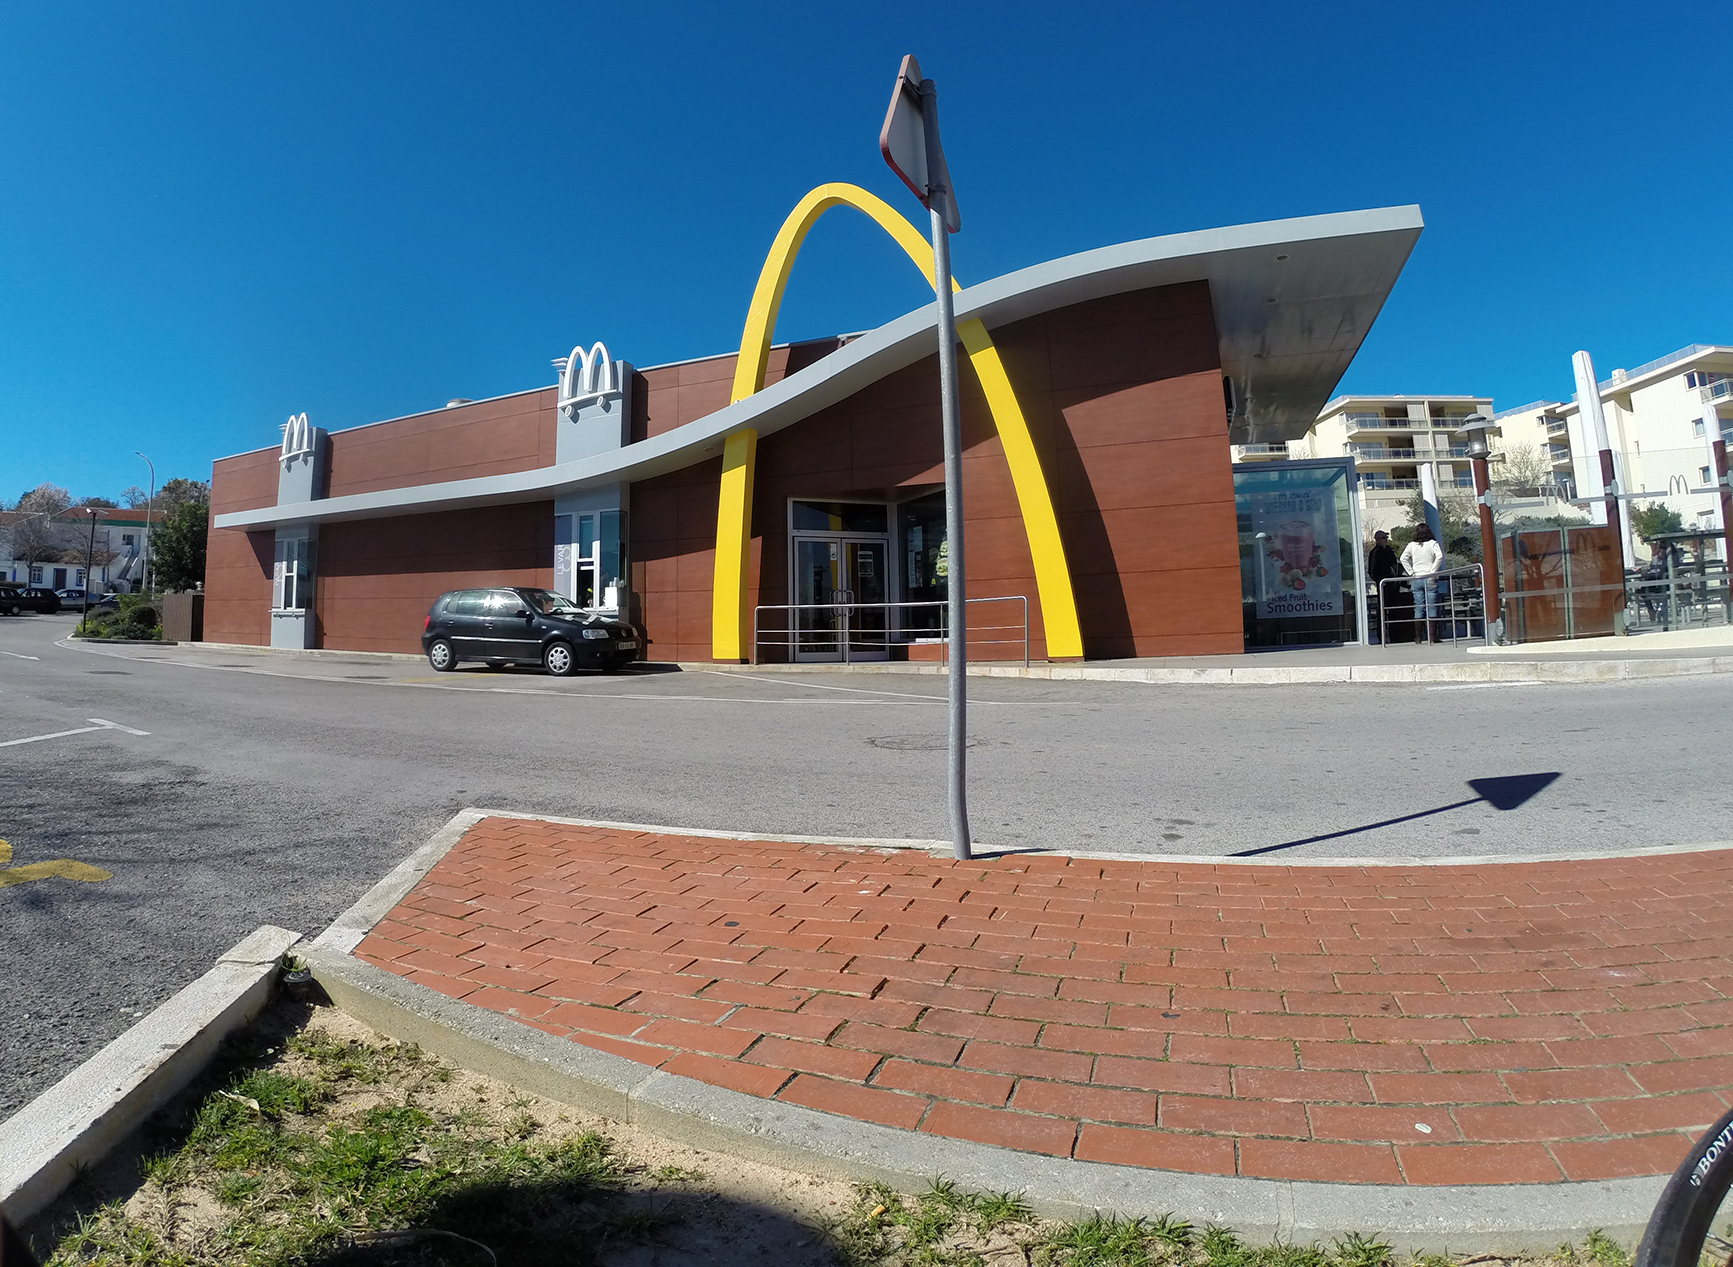 Stopping at a McDonalds in Lagos, Algarve, Portugal